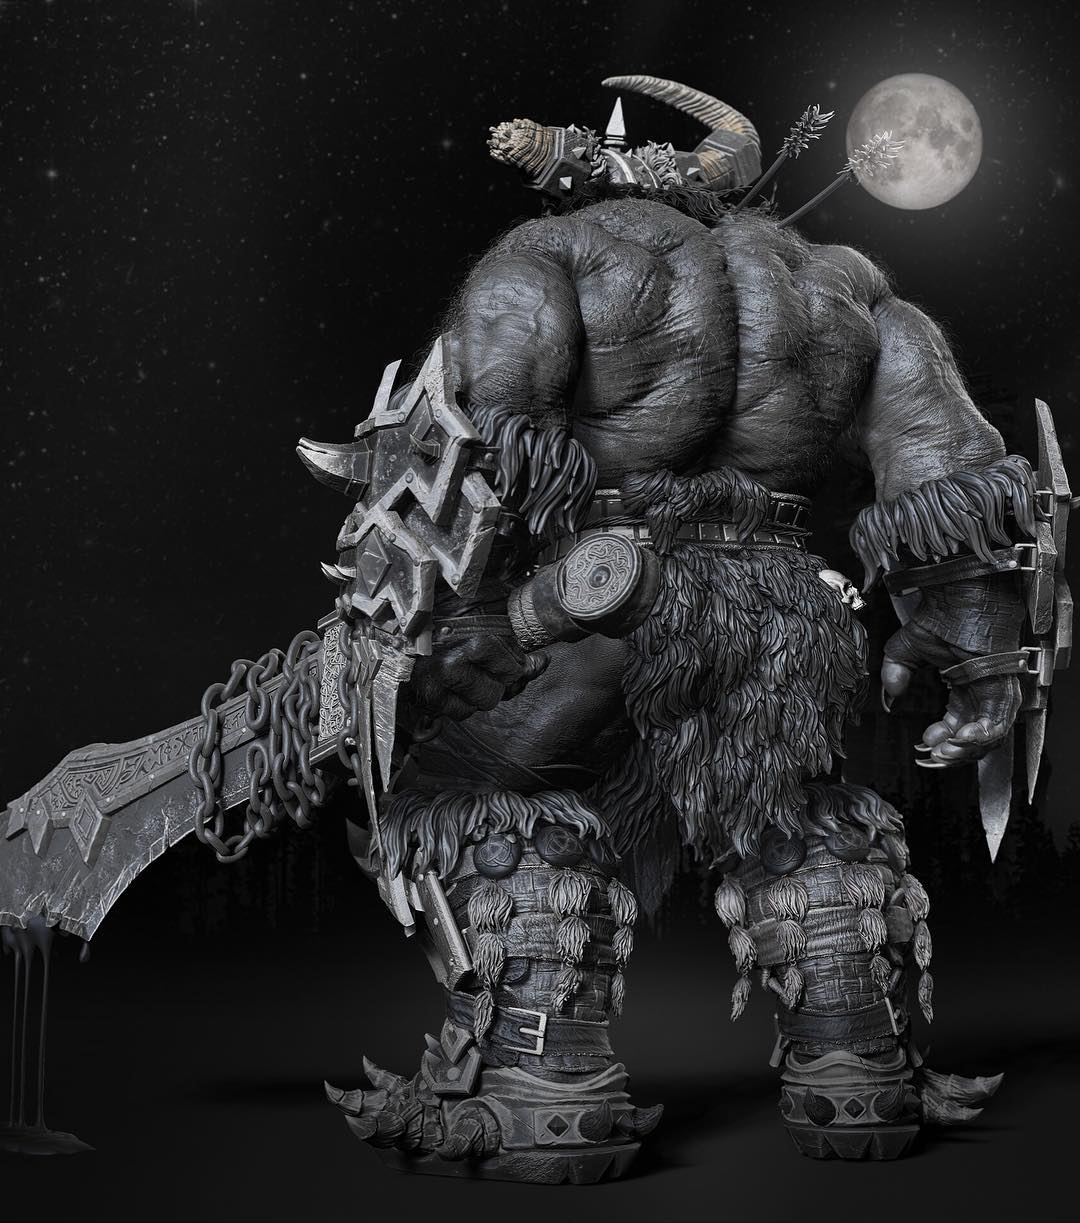 Fan Art Of Warcraft Orc By Gaurav Kumar Cghow